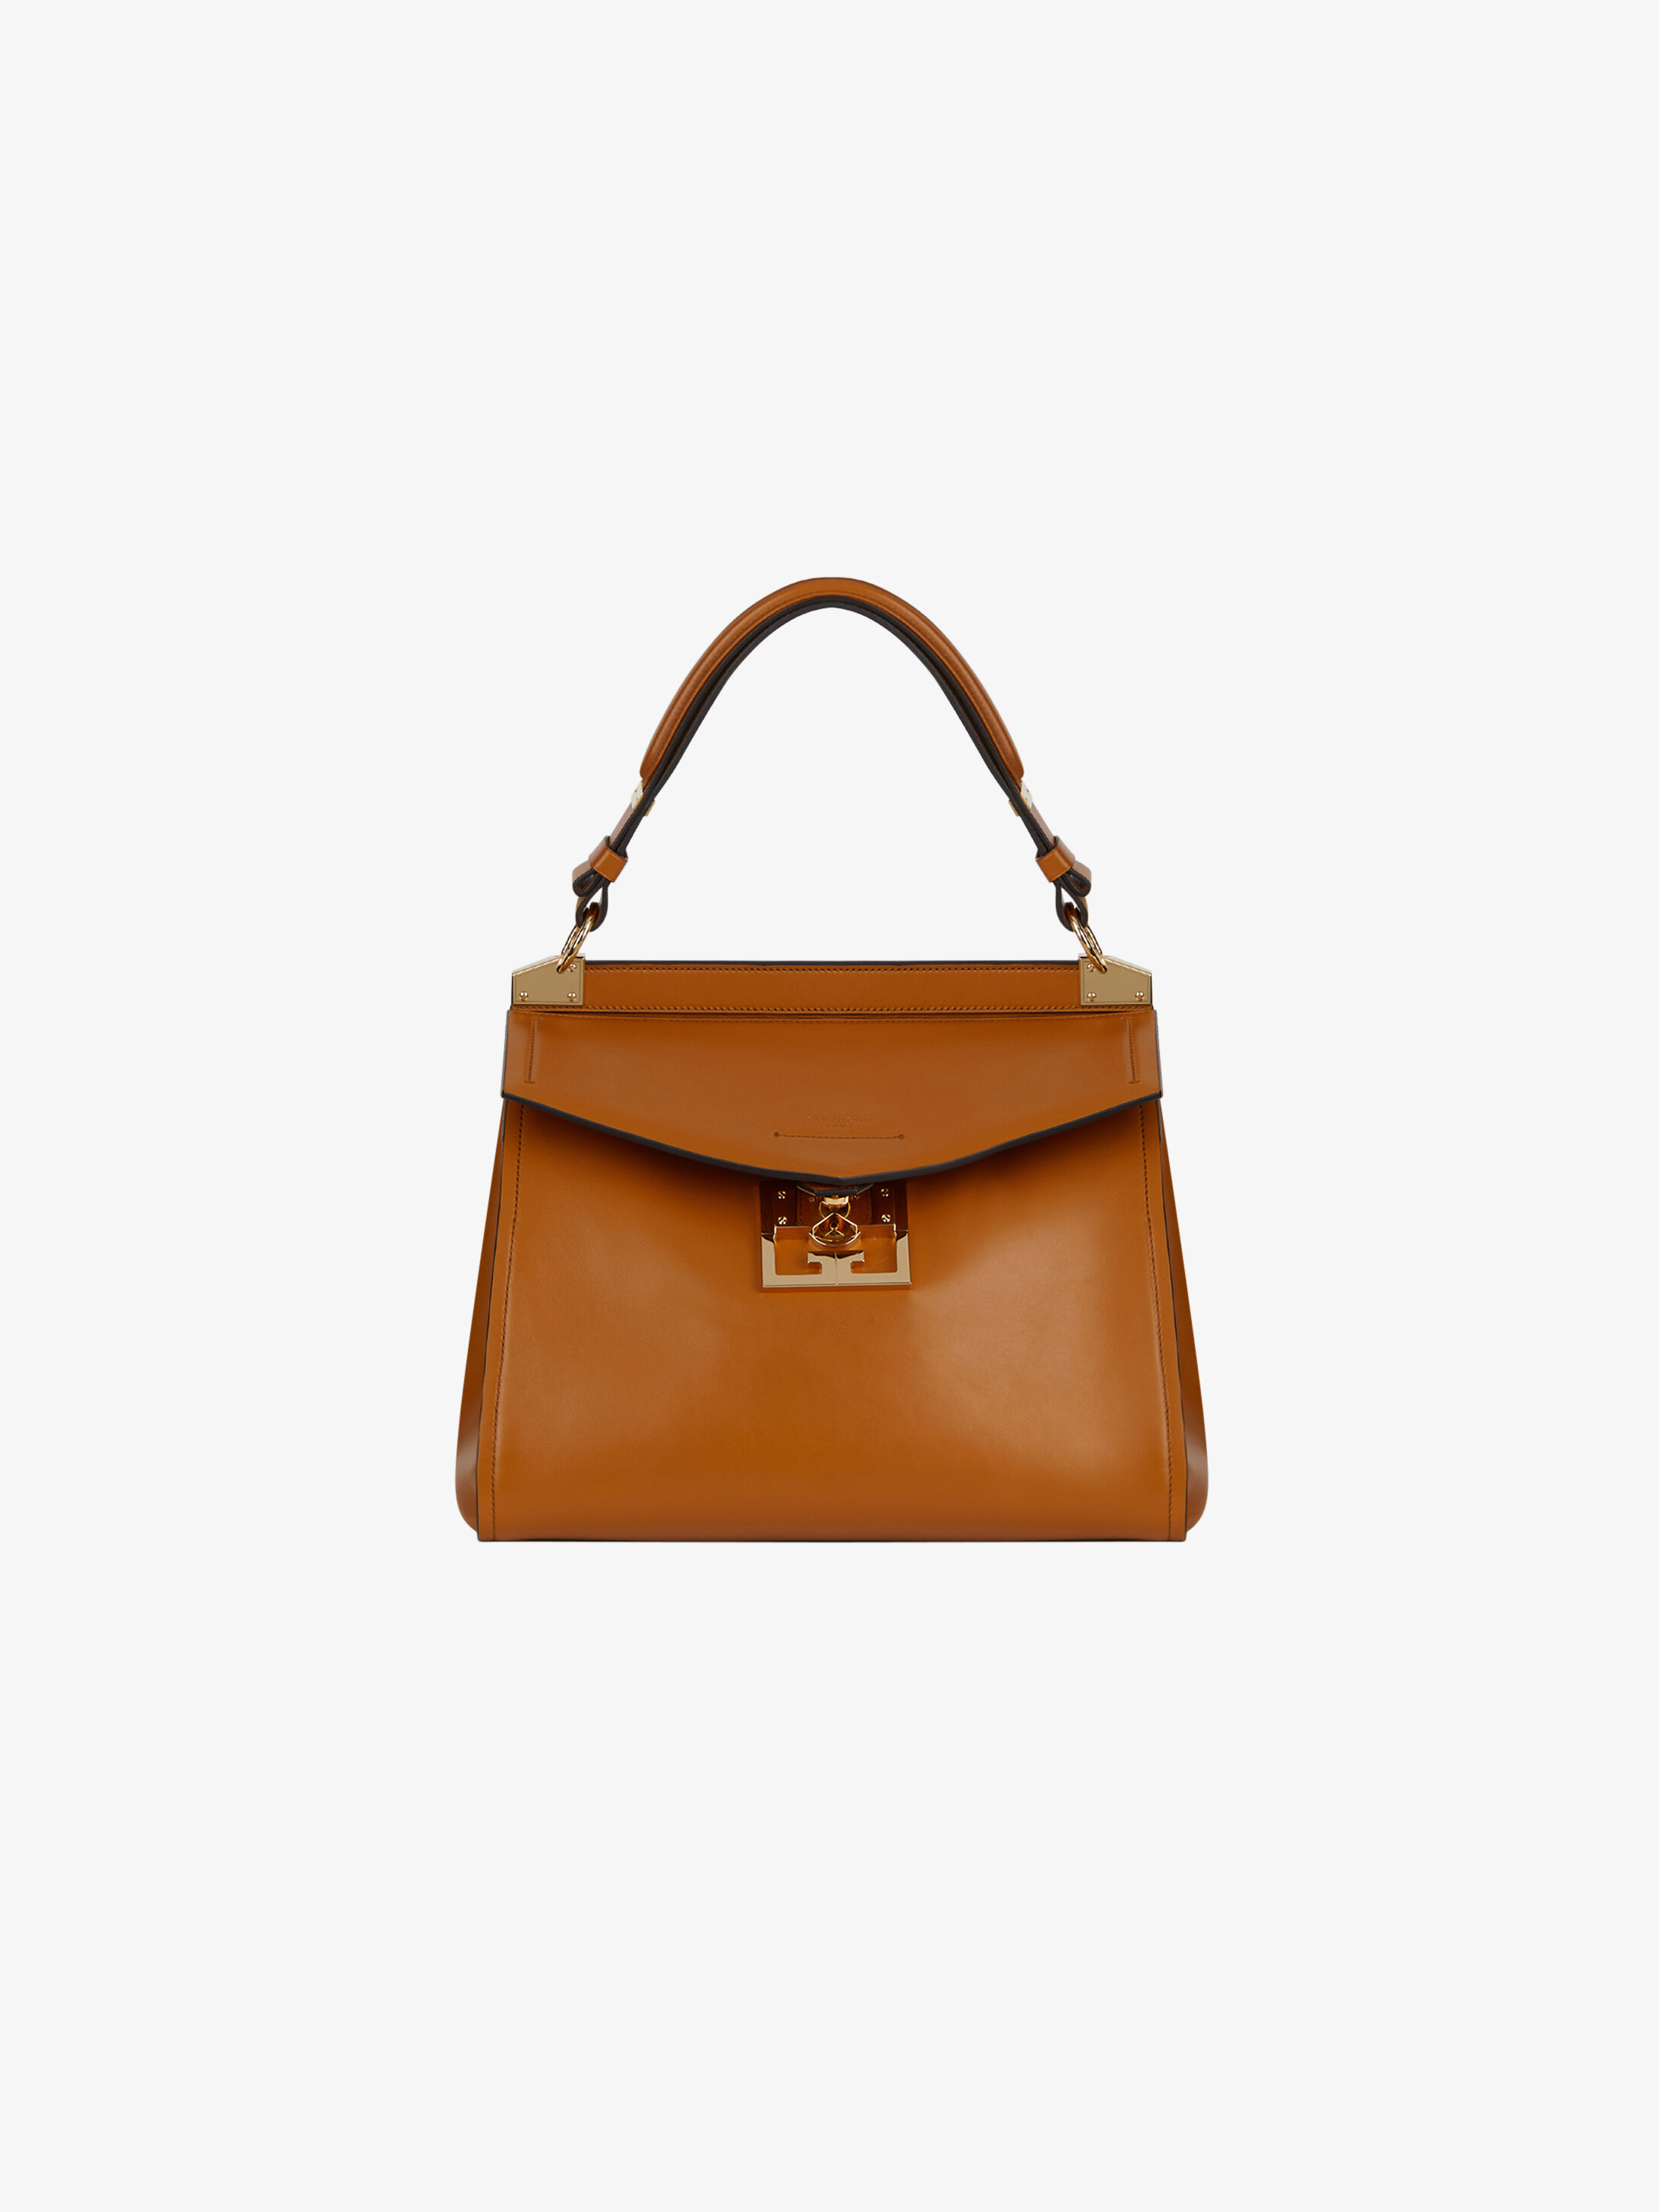 63f00c1ecb Women's Handbags collection by Givenchy. | GIVENCHY Paris